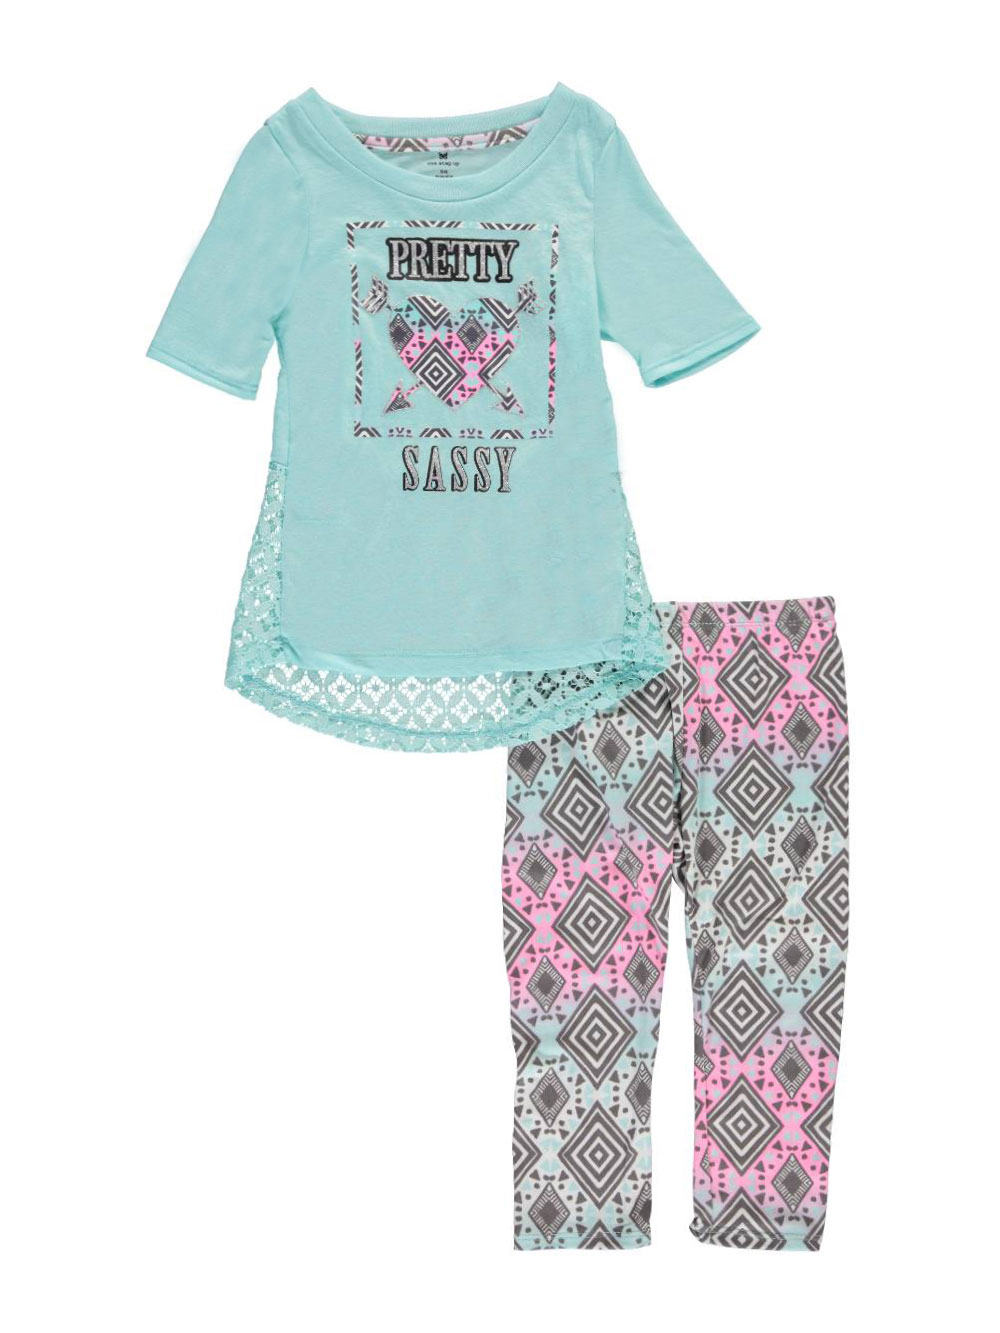 Image of One Step Up Little Girls Pretty Sassy 2Piece Outfit Sizes 4  6X